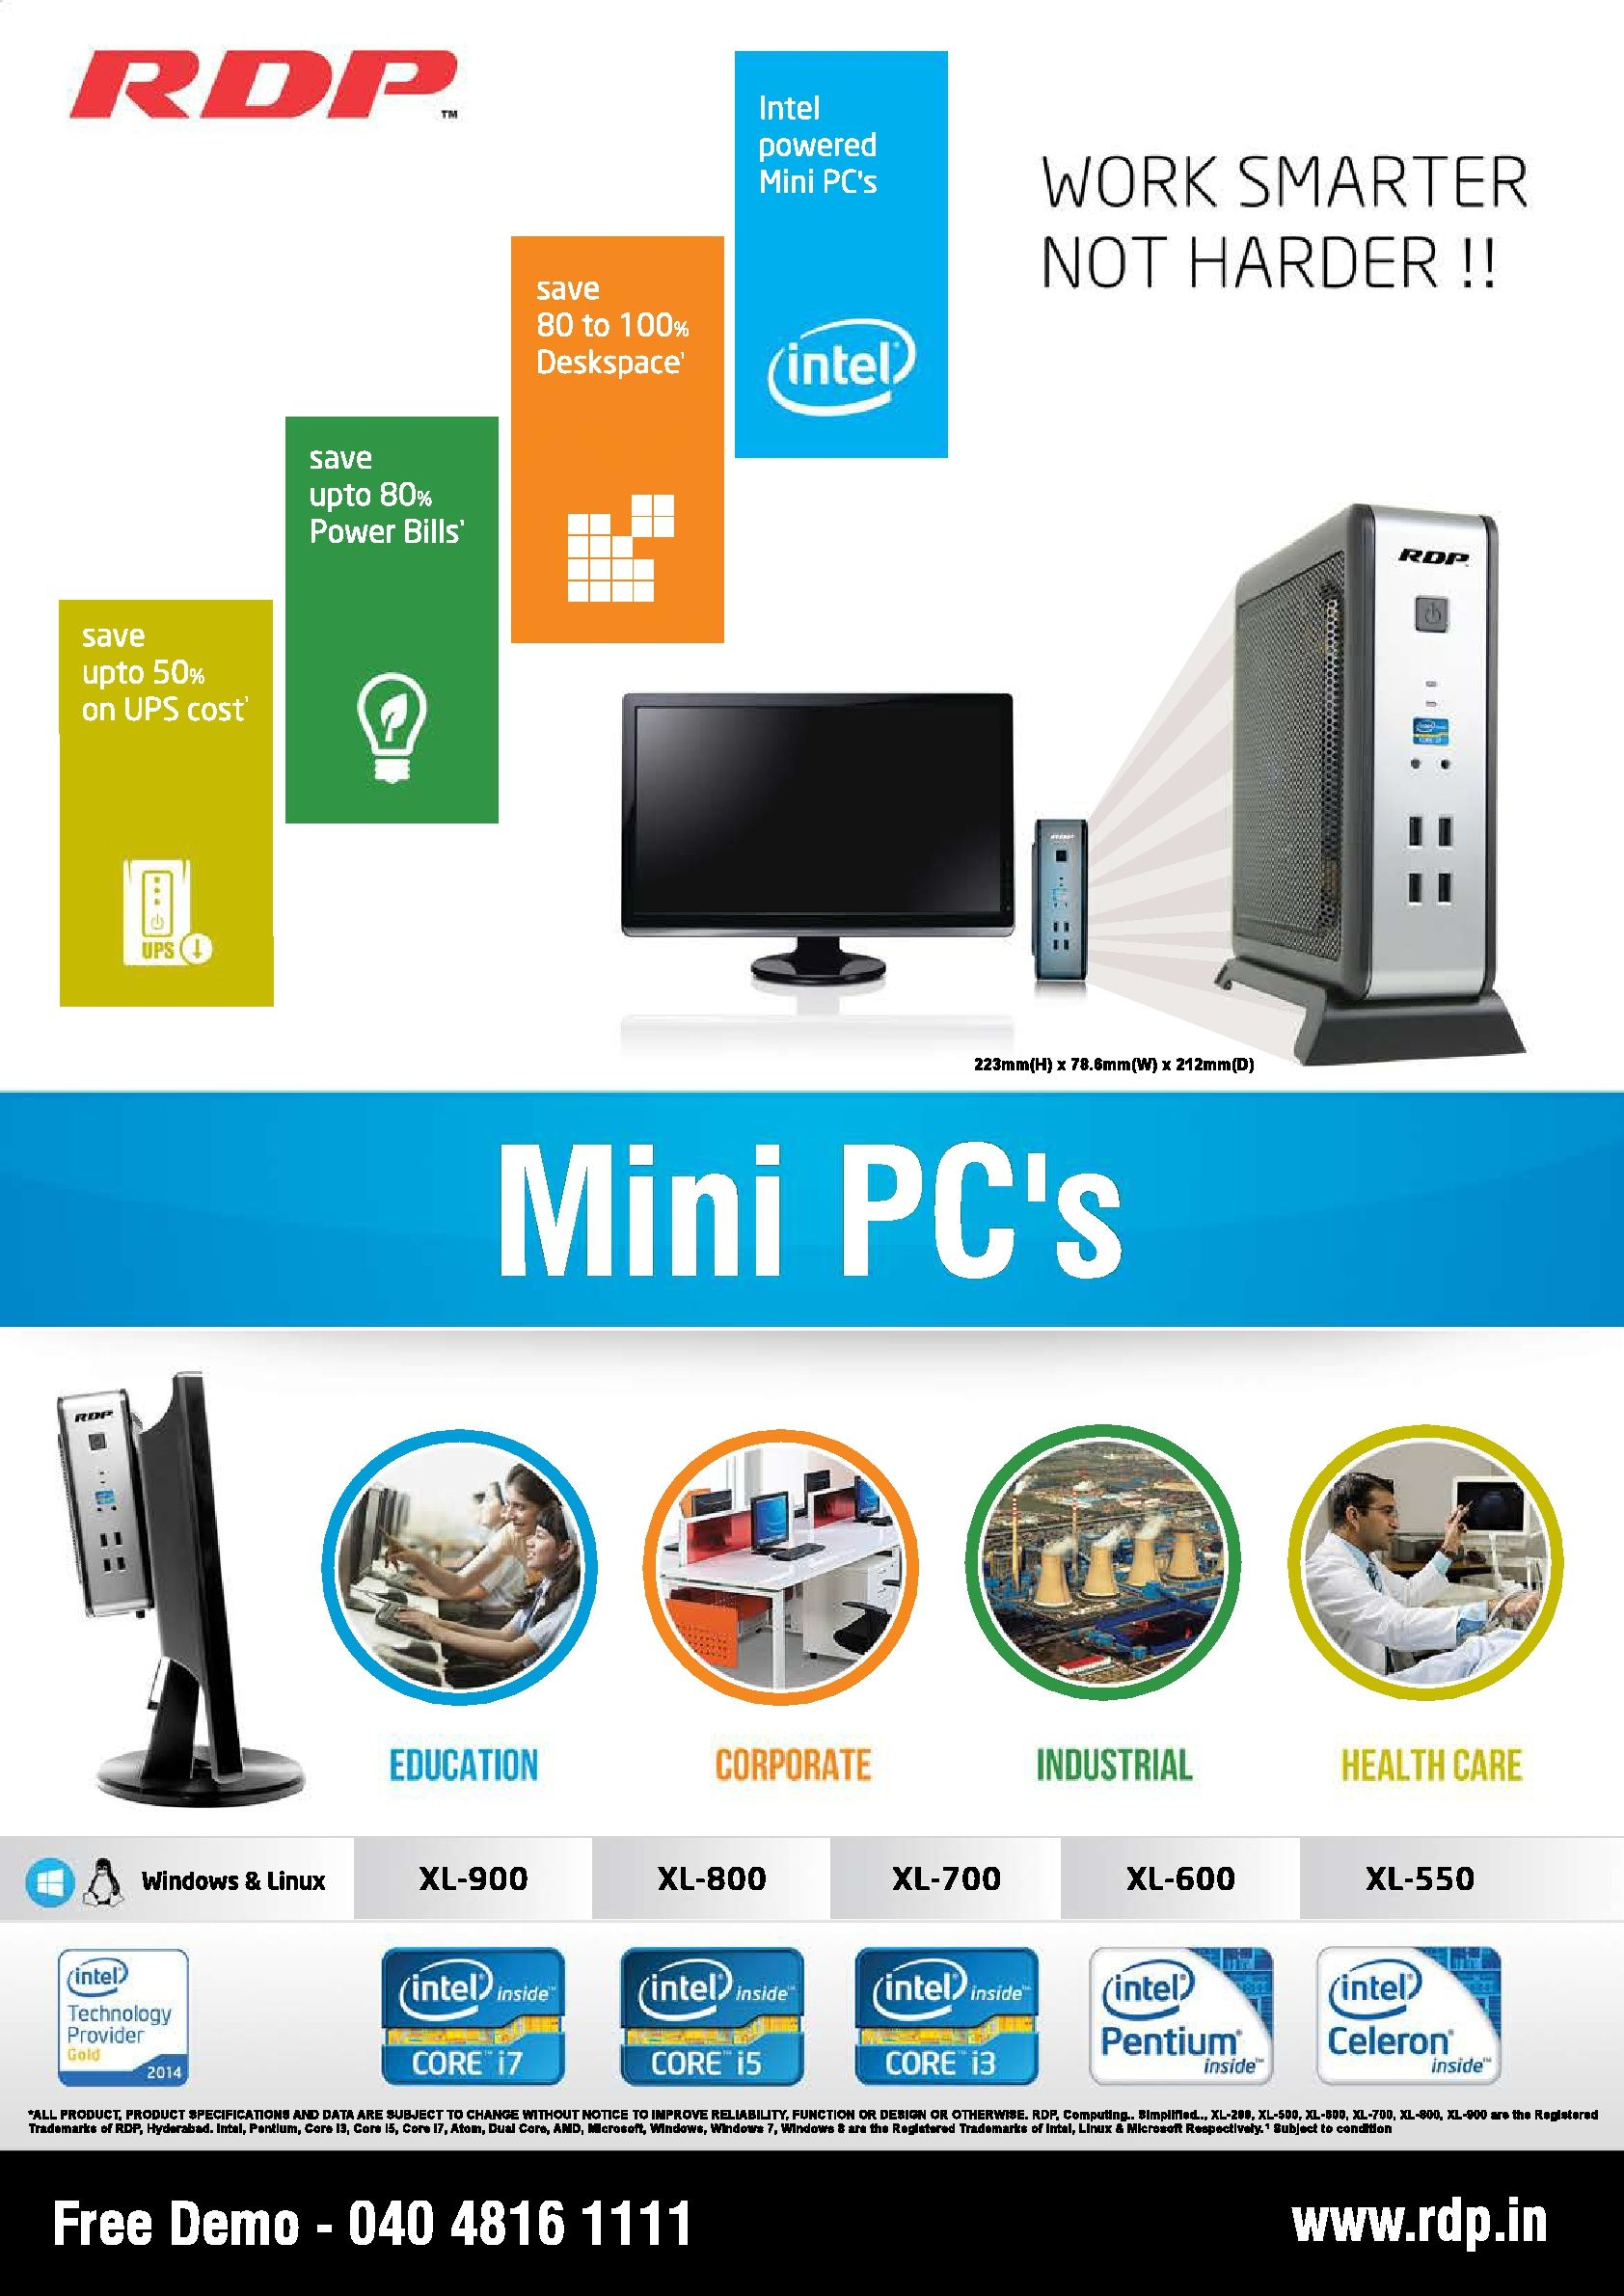 RDP Mini PC is small but extremely powerful, Powered by